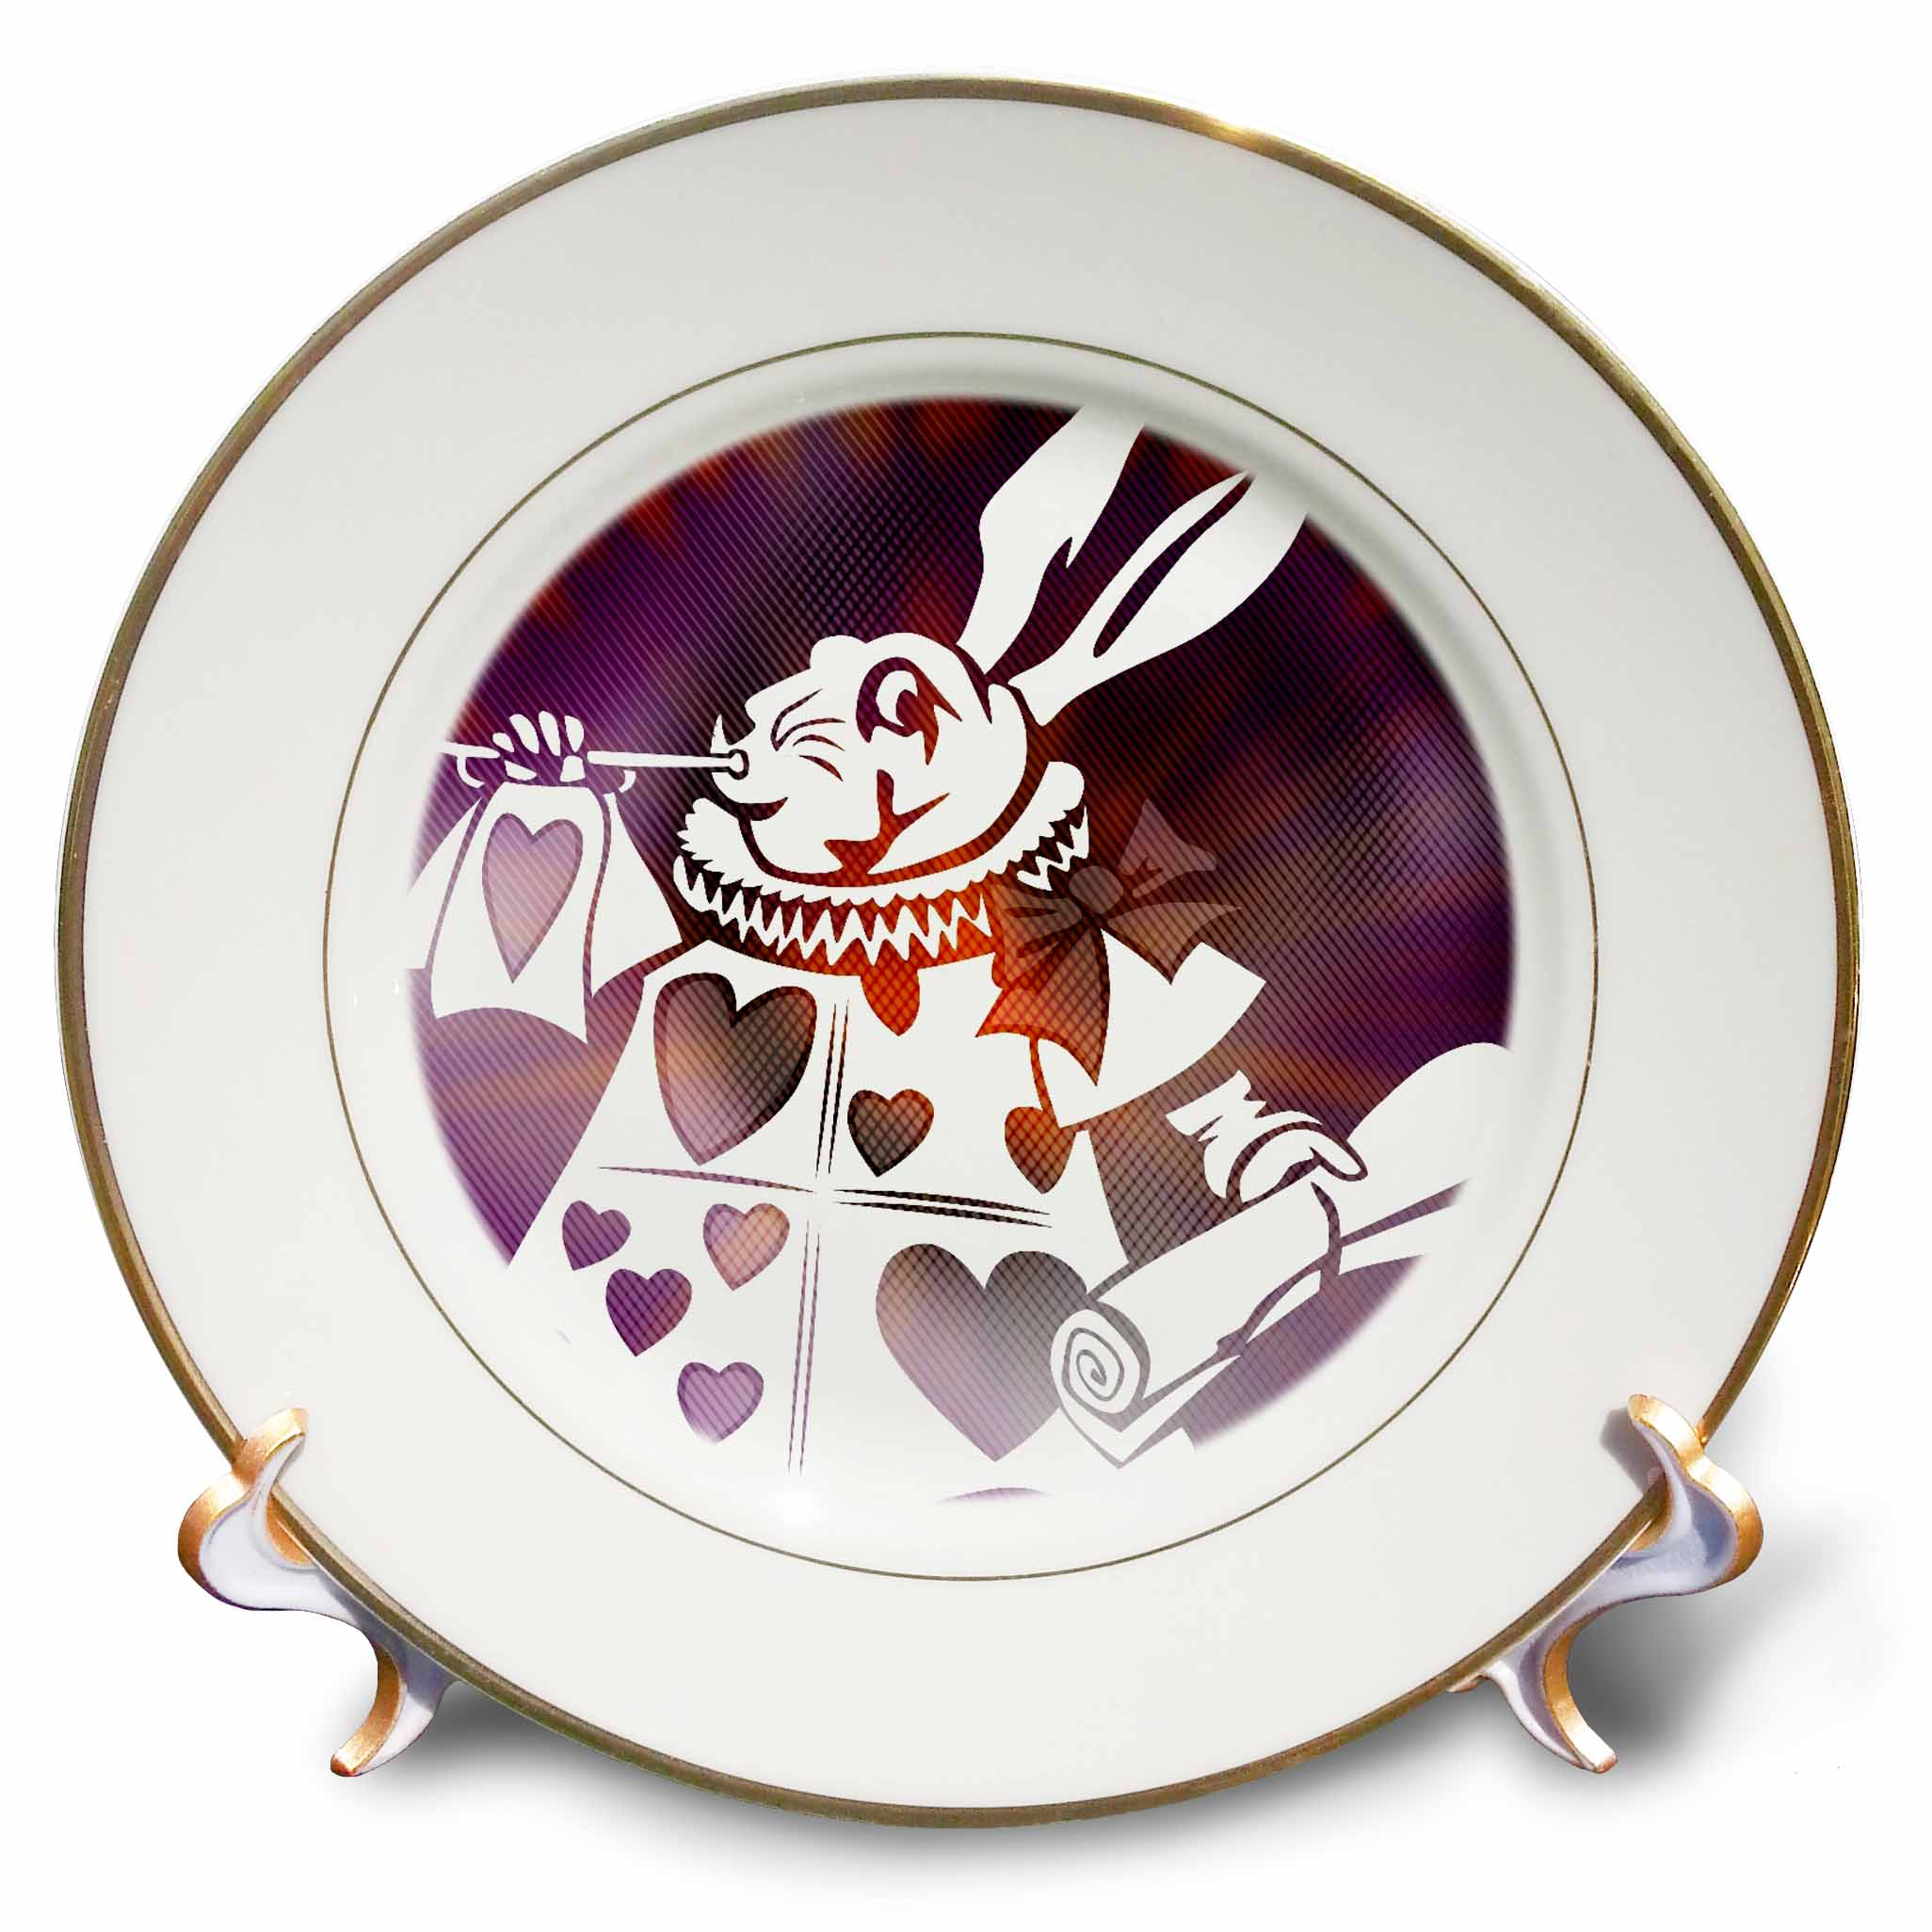 3dRose Magical White Rabbit - Cartoon Characters - Alice in Wonderland Fun, Porcelain Plate, 8-inch